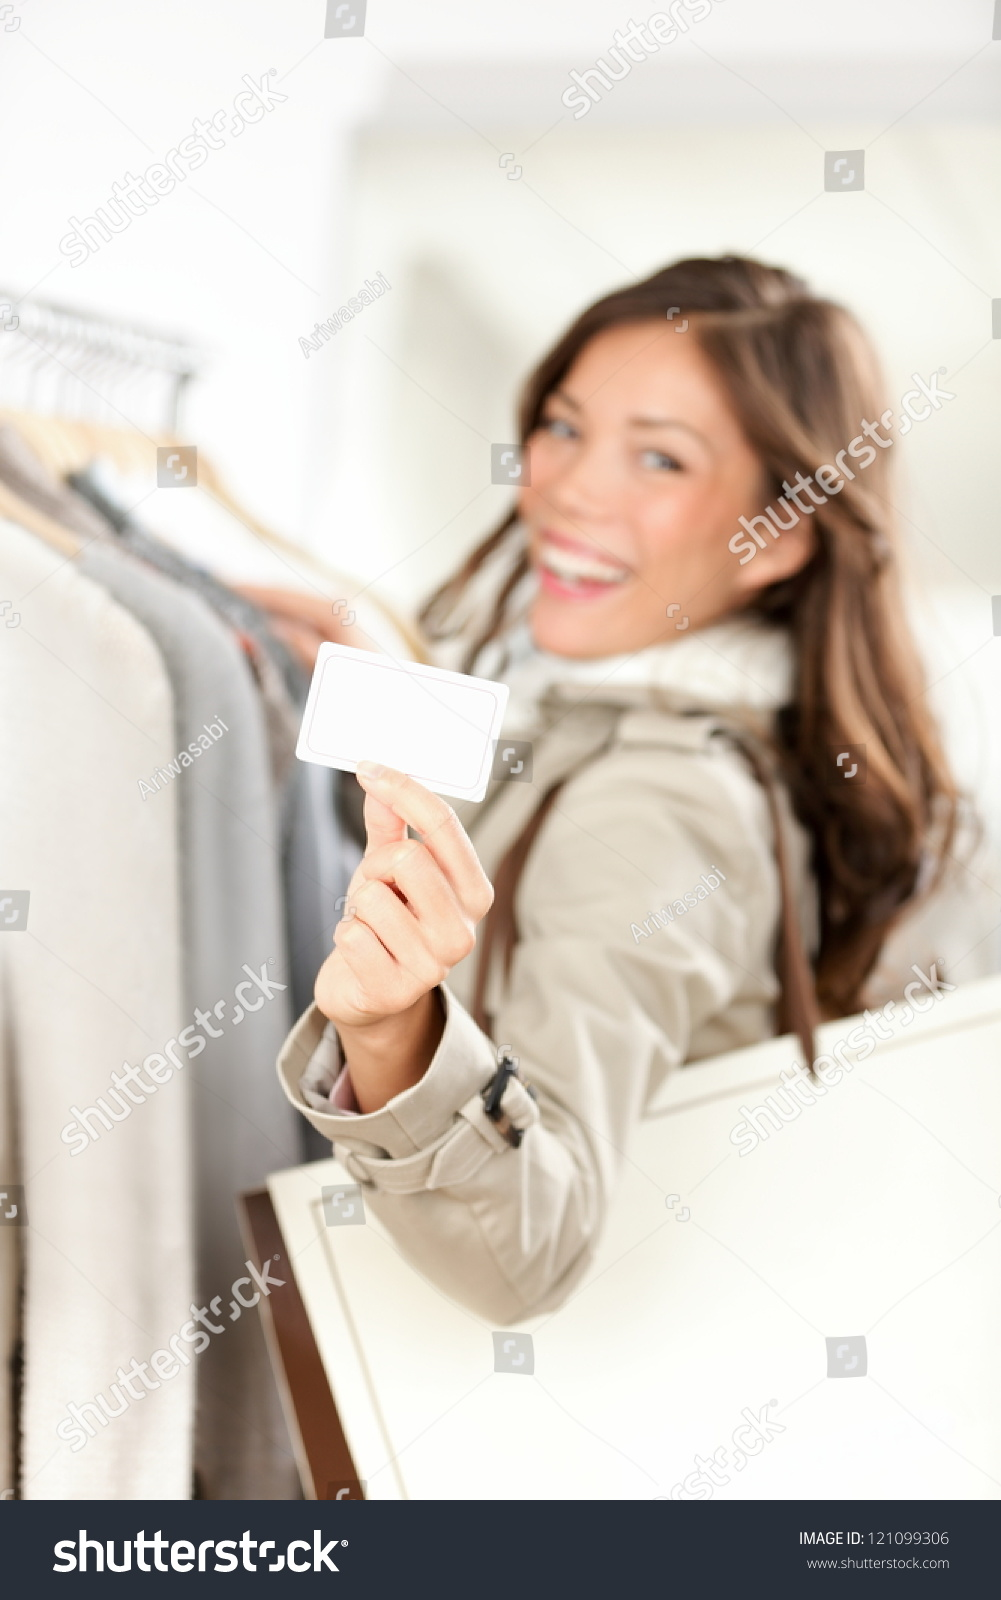 Shopping gift card woman happy showing business card or for Gift card business model